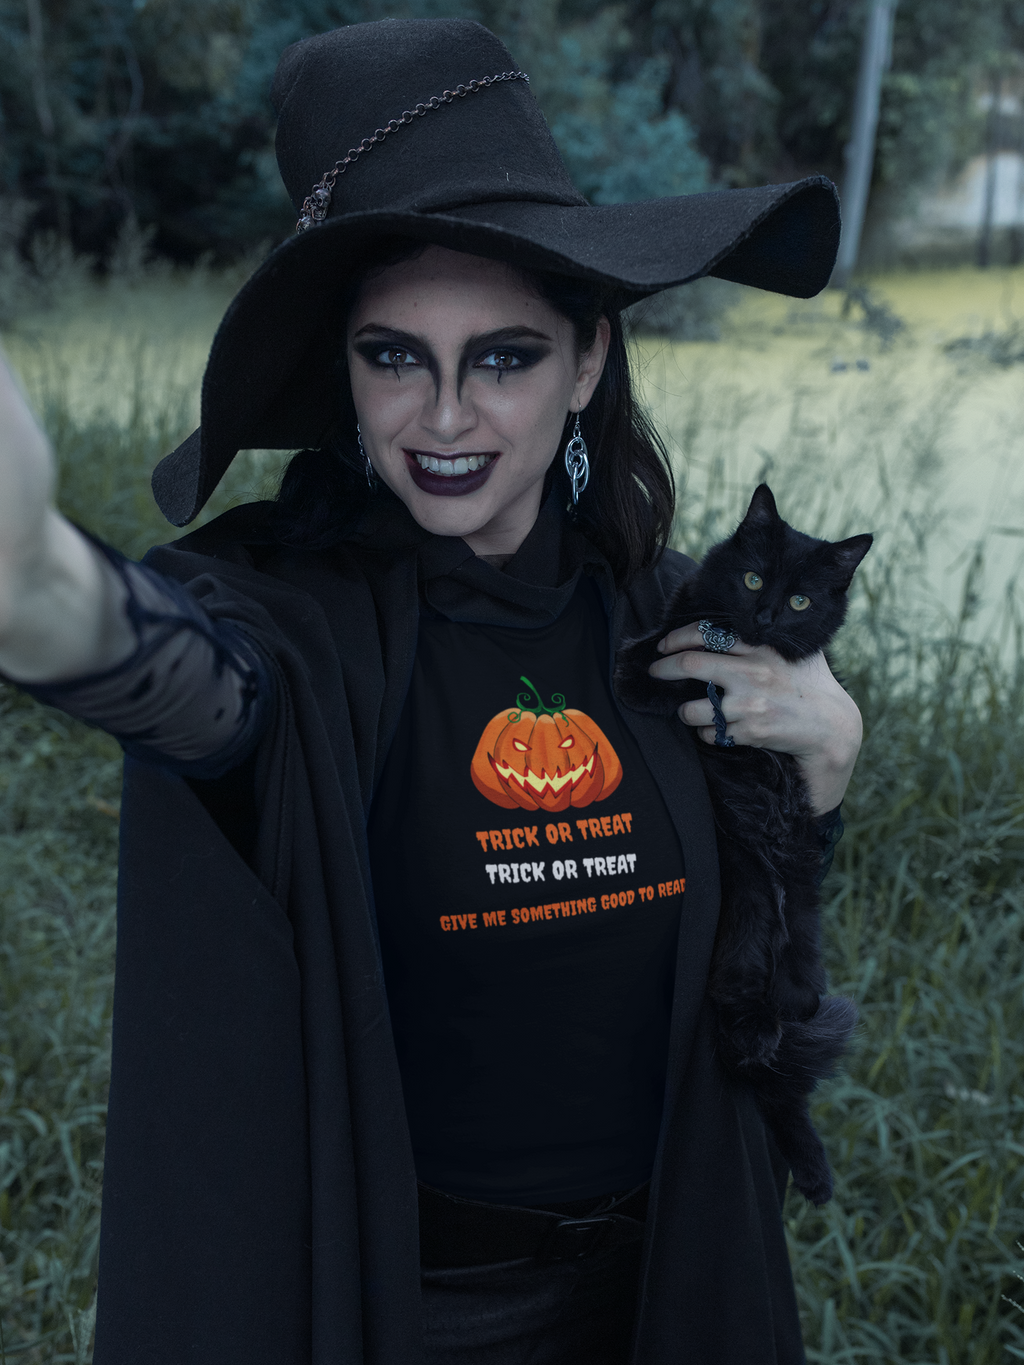 Trick or Treat - Women's short sleeve t-shirt - Bookish Merchandise - Gift for Booklovers - Book Merch - Reading Accessories - Bookacy - Books and More